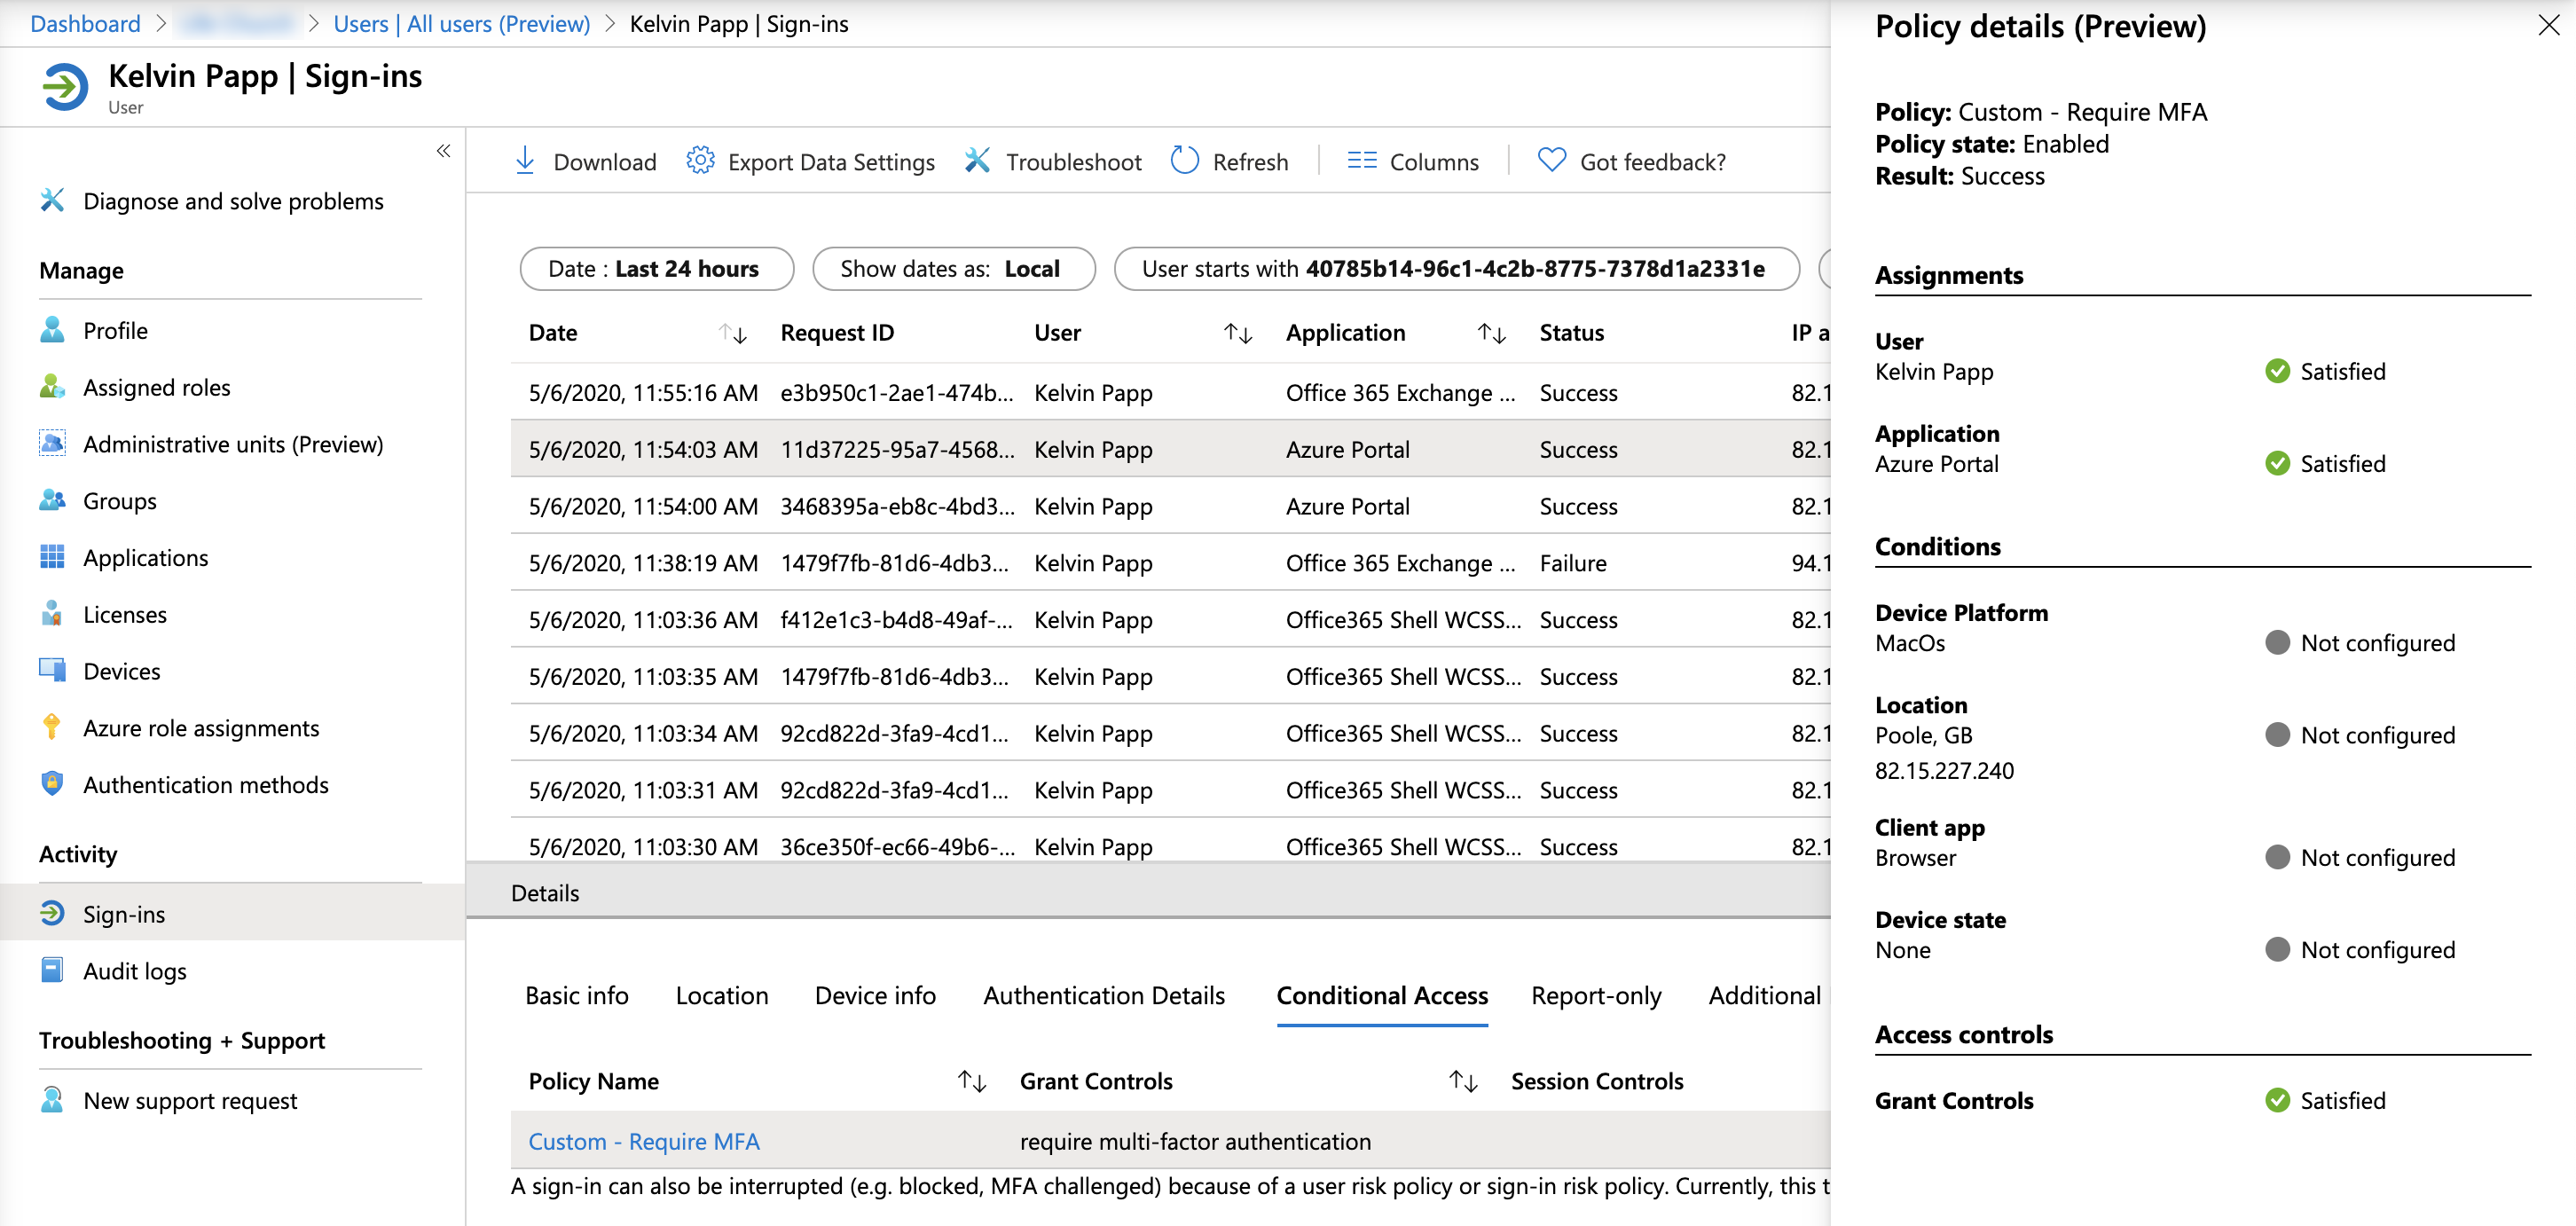 A screenshot of the Conditional Access Policy Details summary